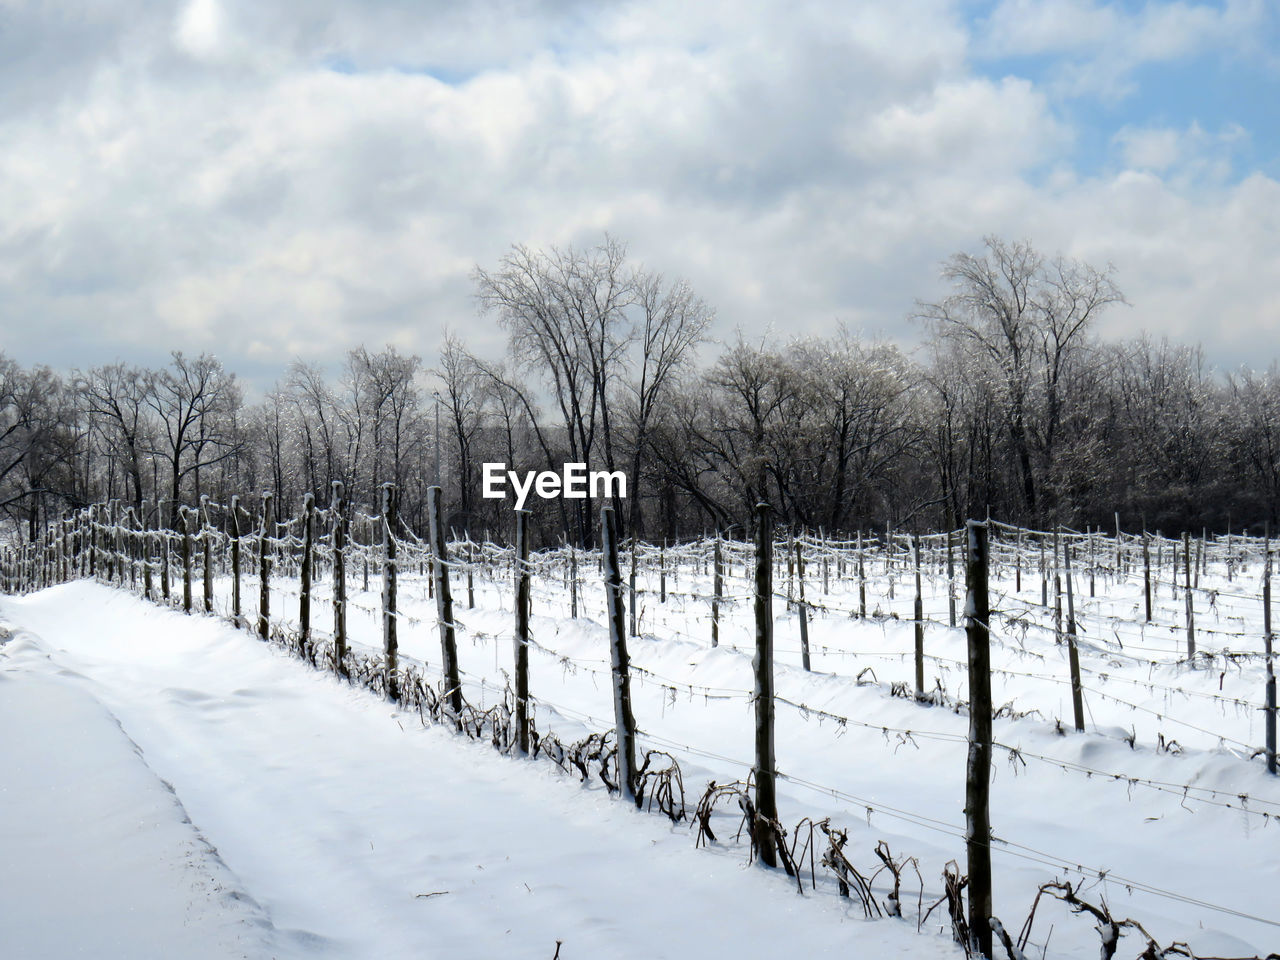 snow, cold temperature, winter, cloud - sky, sky, tree, white color, bare tree, plant, no people, tranquility, beauty in nature, tranquil scene, nature, scenics - nature, field, covering, land, day, outdoors, wooden post